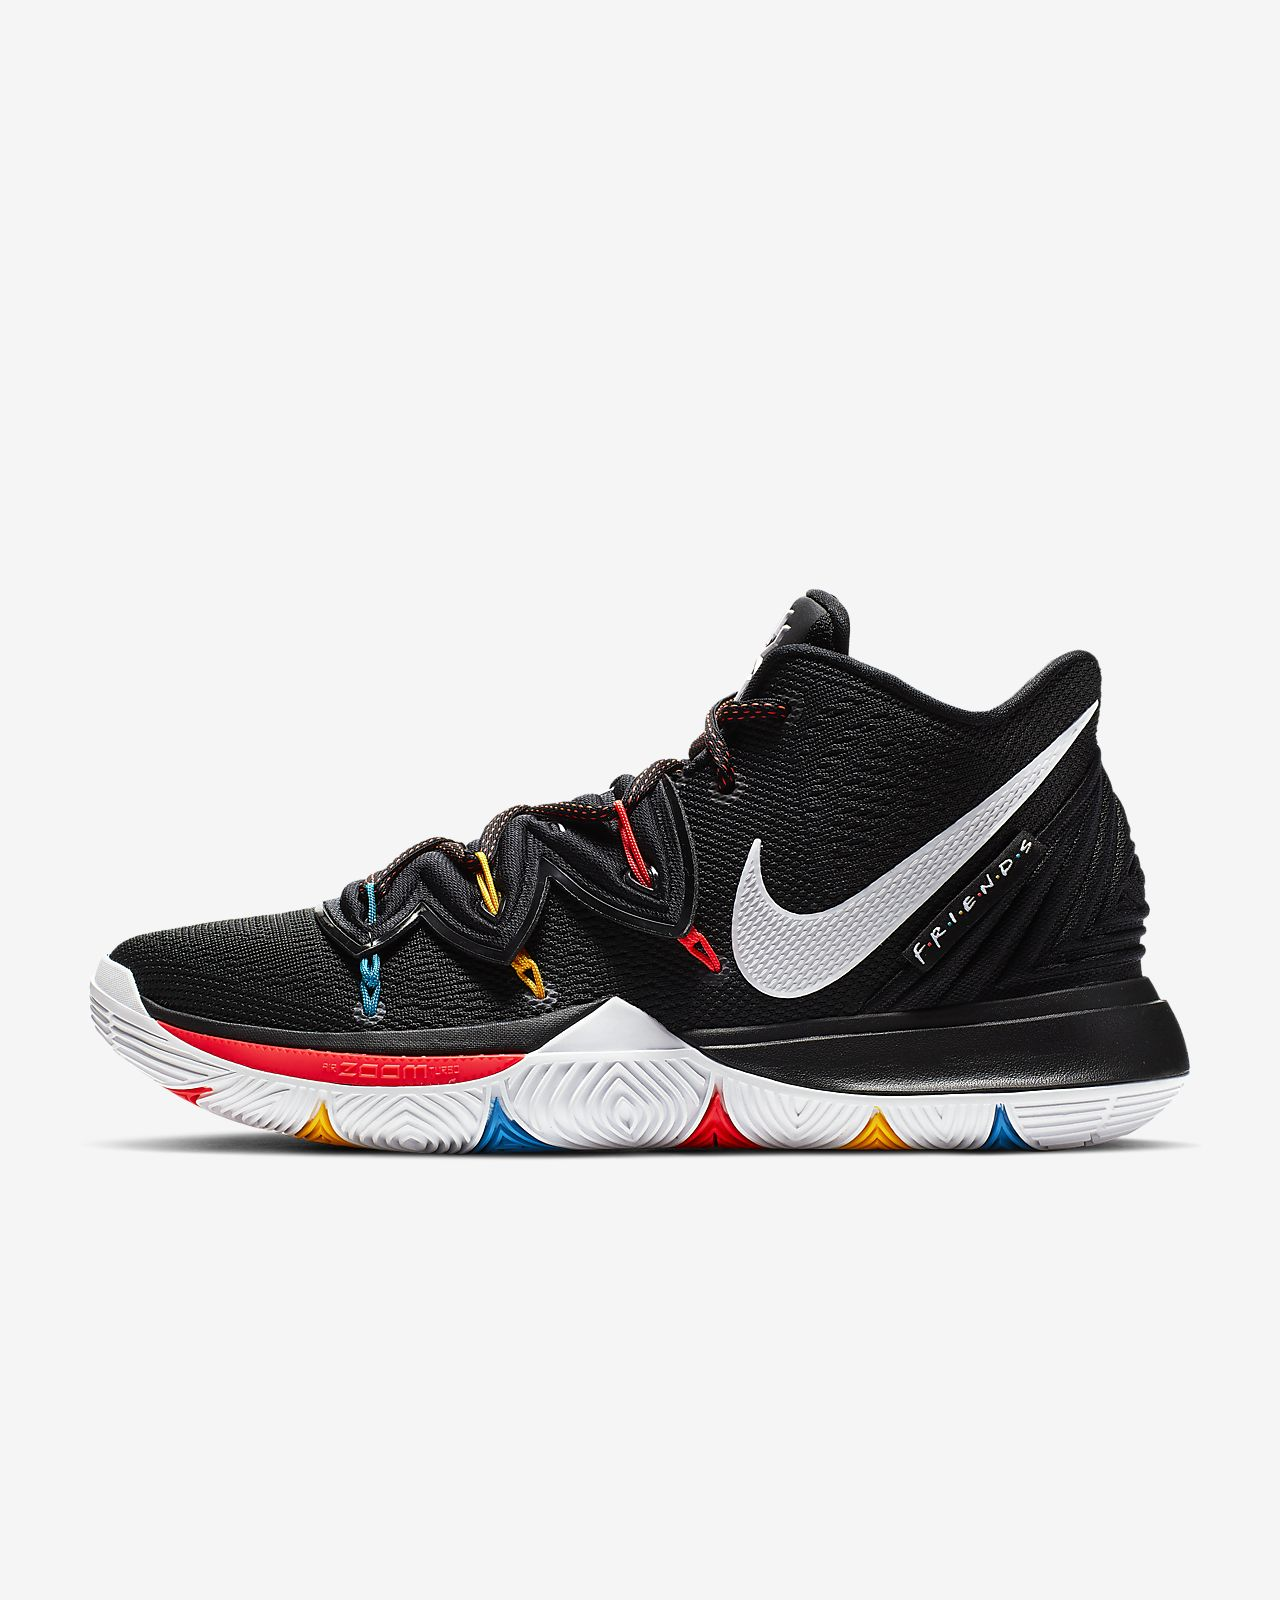 bbd933487c Kyrie 5 x Friends Basketball Shoe. Nike.com